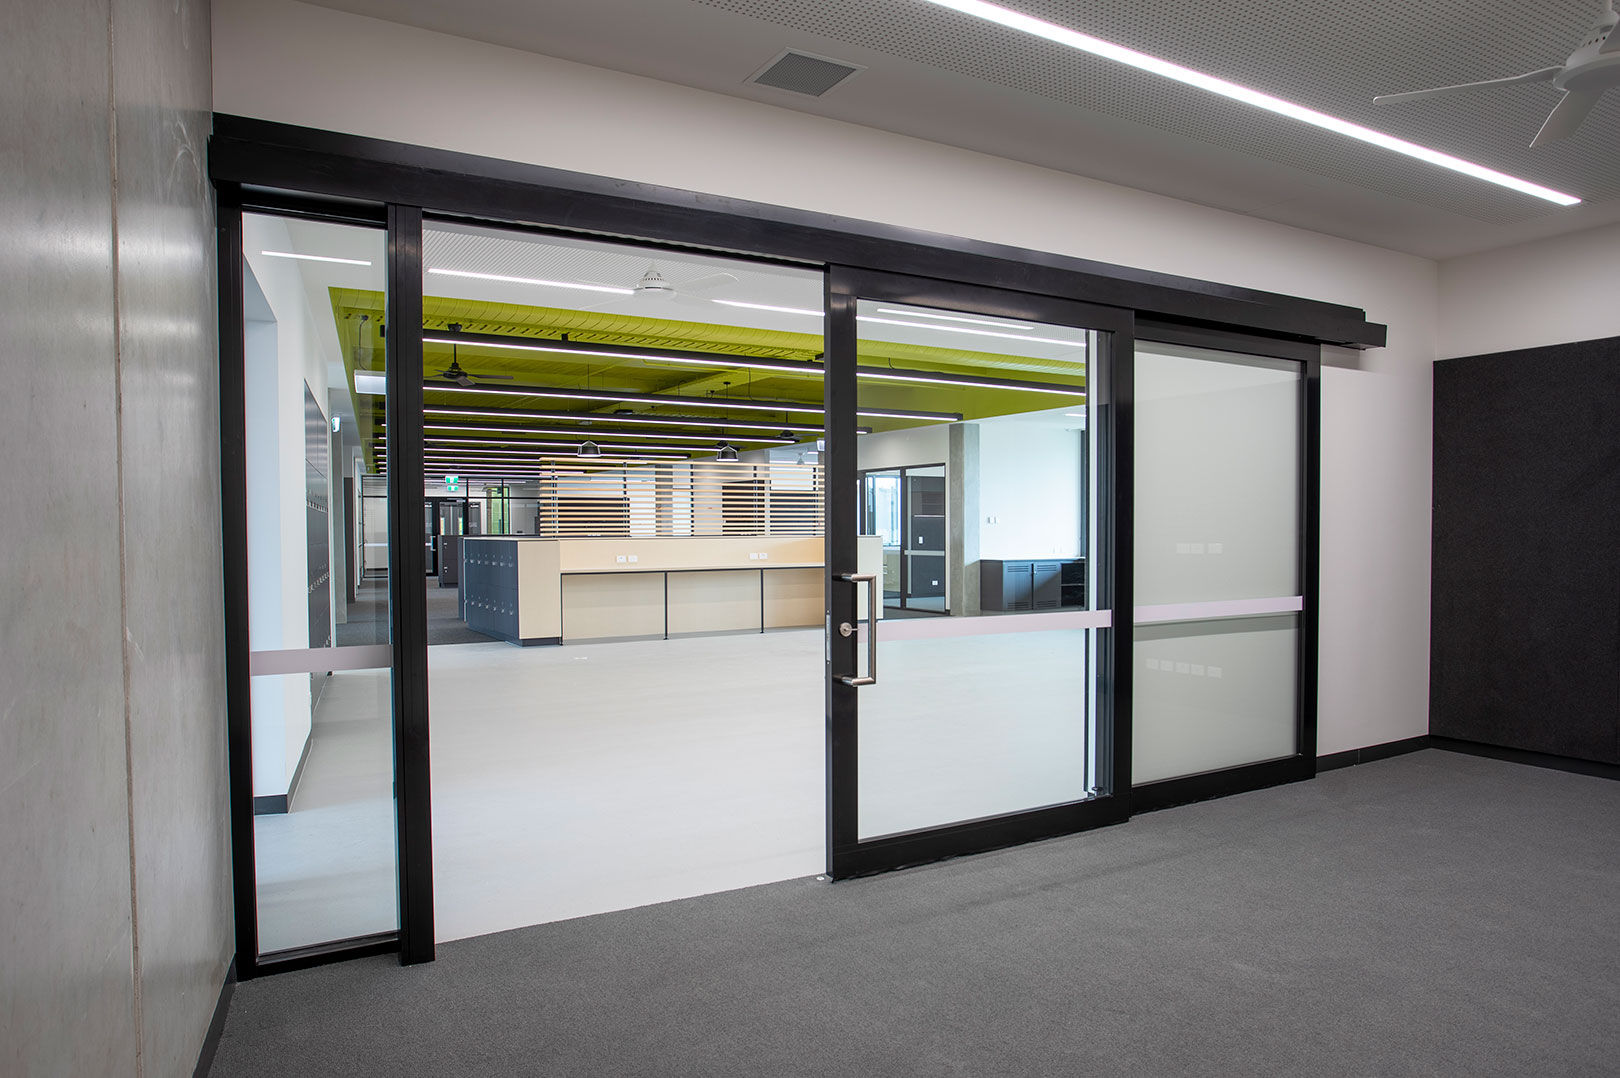 image of a GLYDE acoustic sliding door at a high school